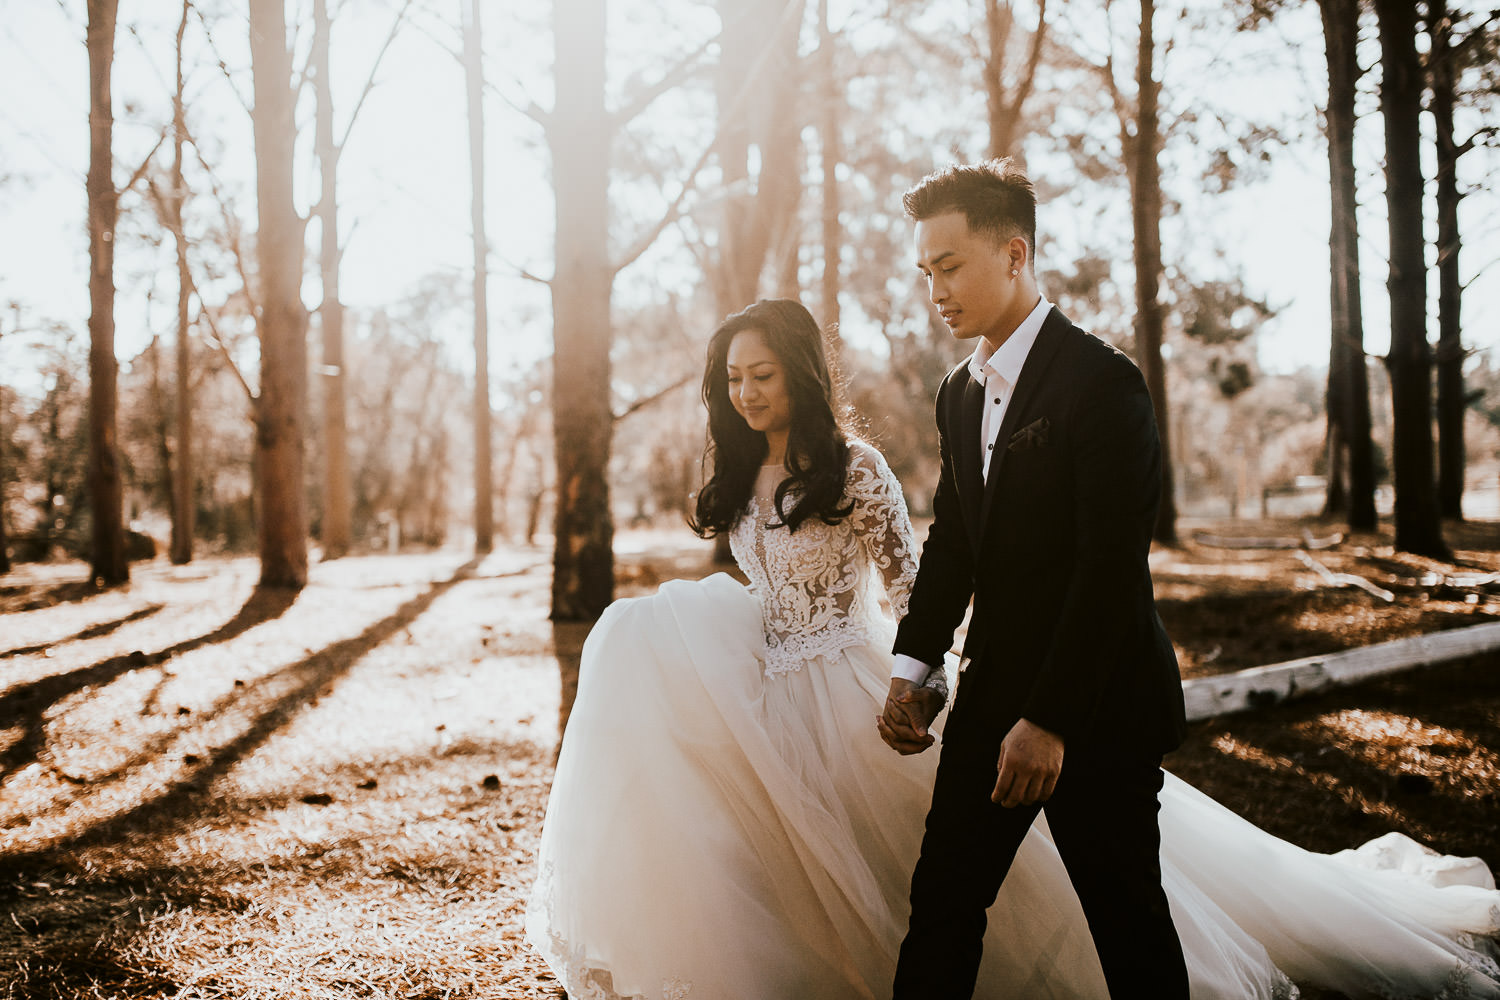 Wanneroo pines bride and groom walking hand in hand